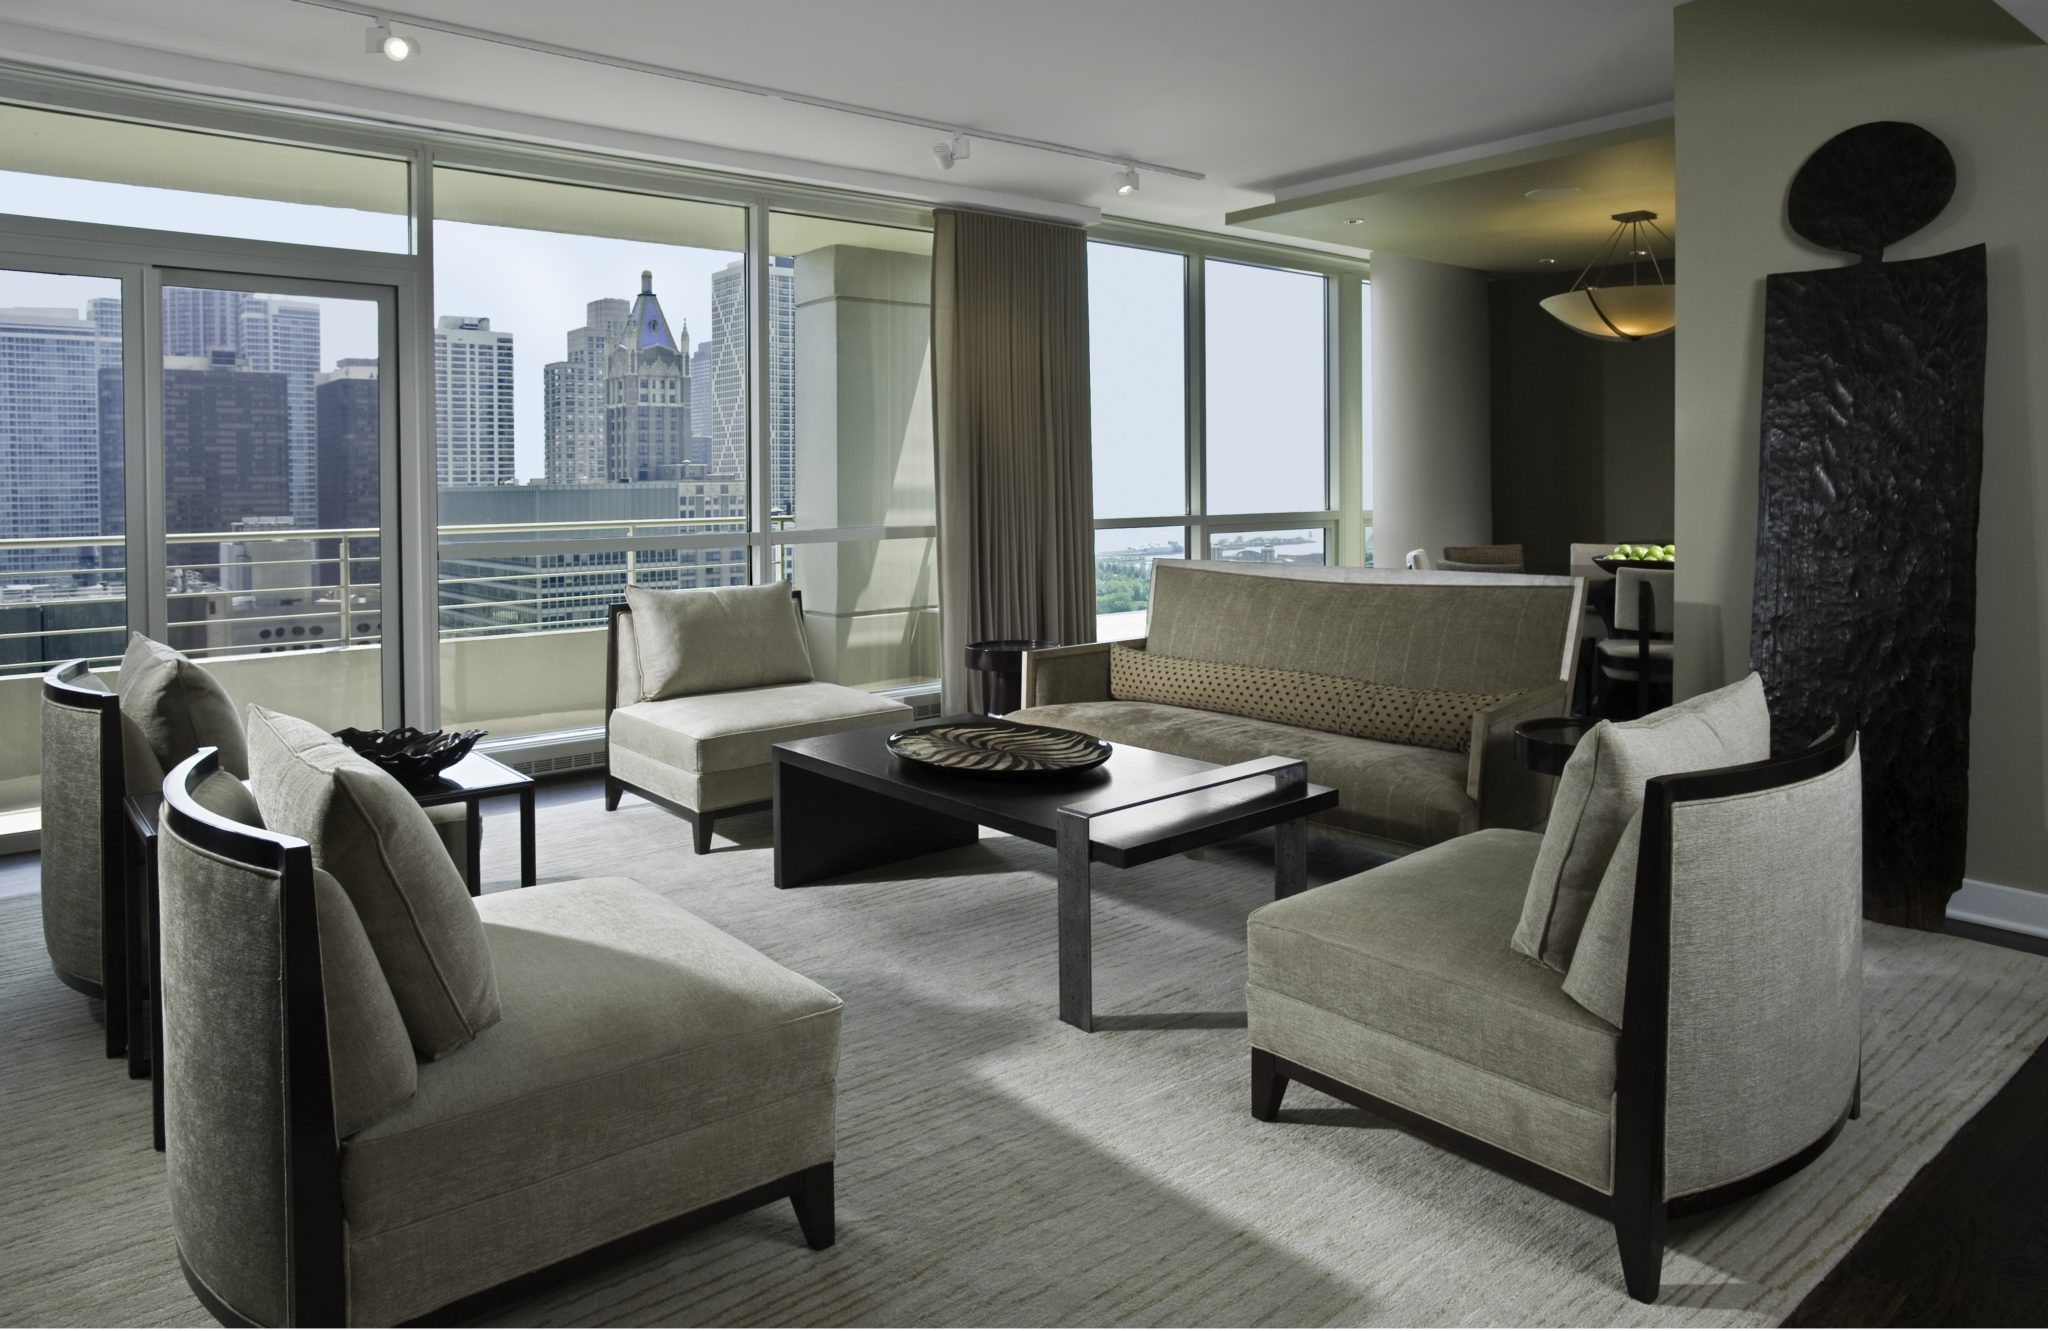 City Scapes by Fredman Design Group